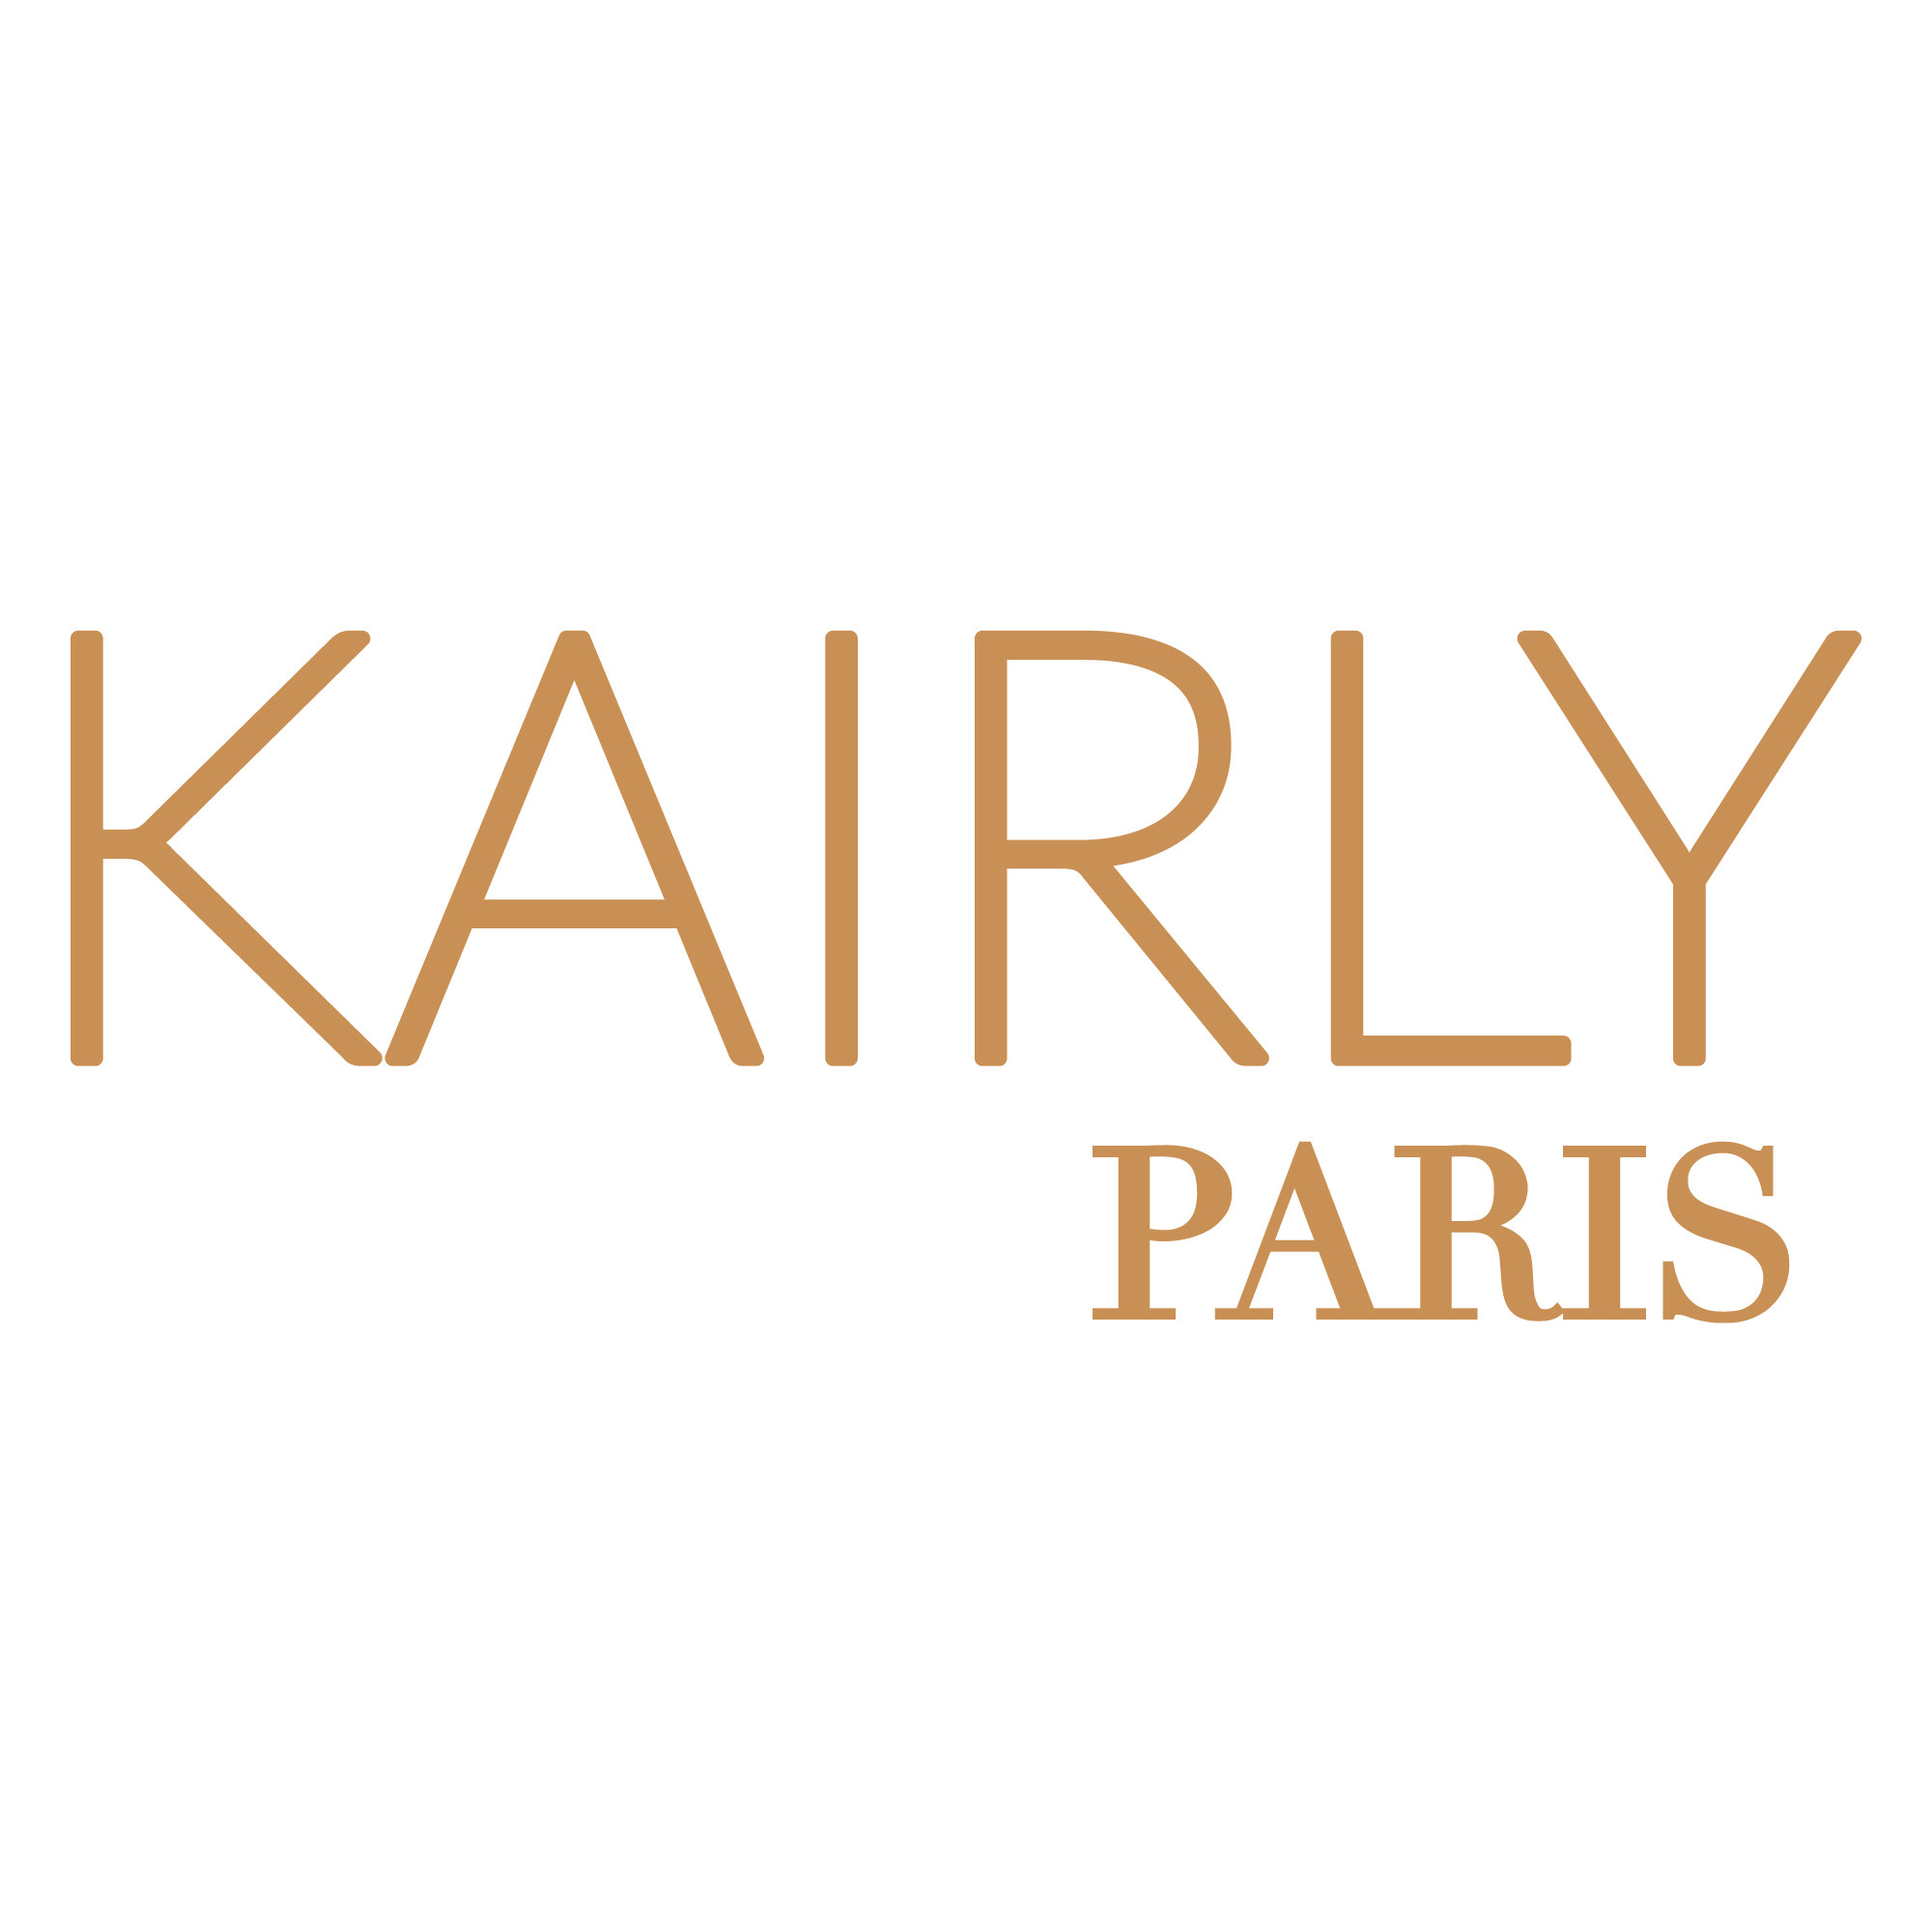 Kairly Paris